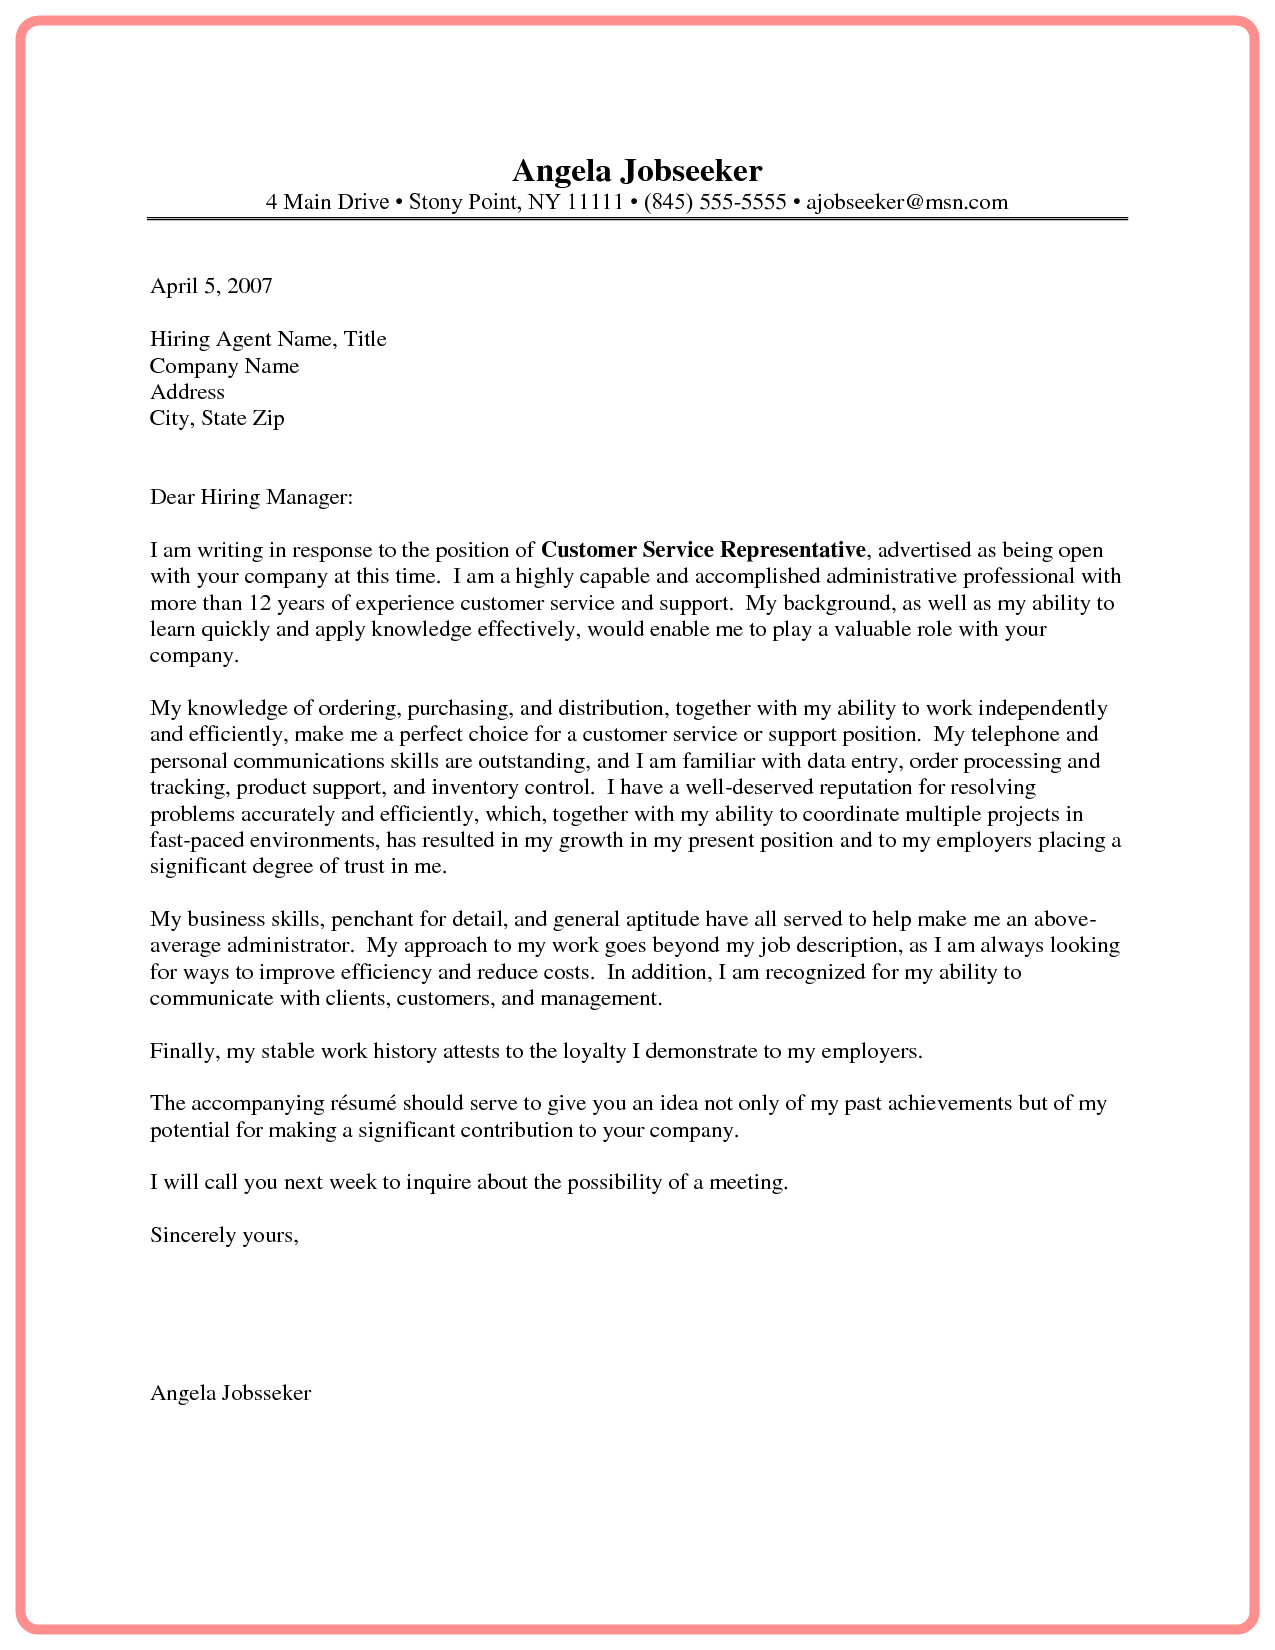 describe background and qualifications for the position customer service representative cover letter sample